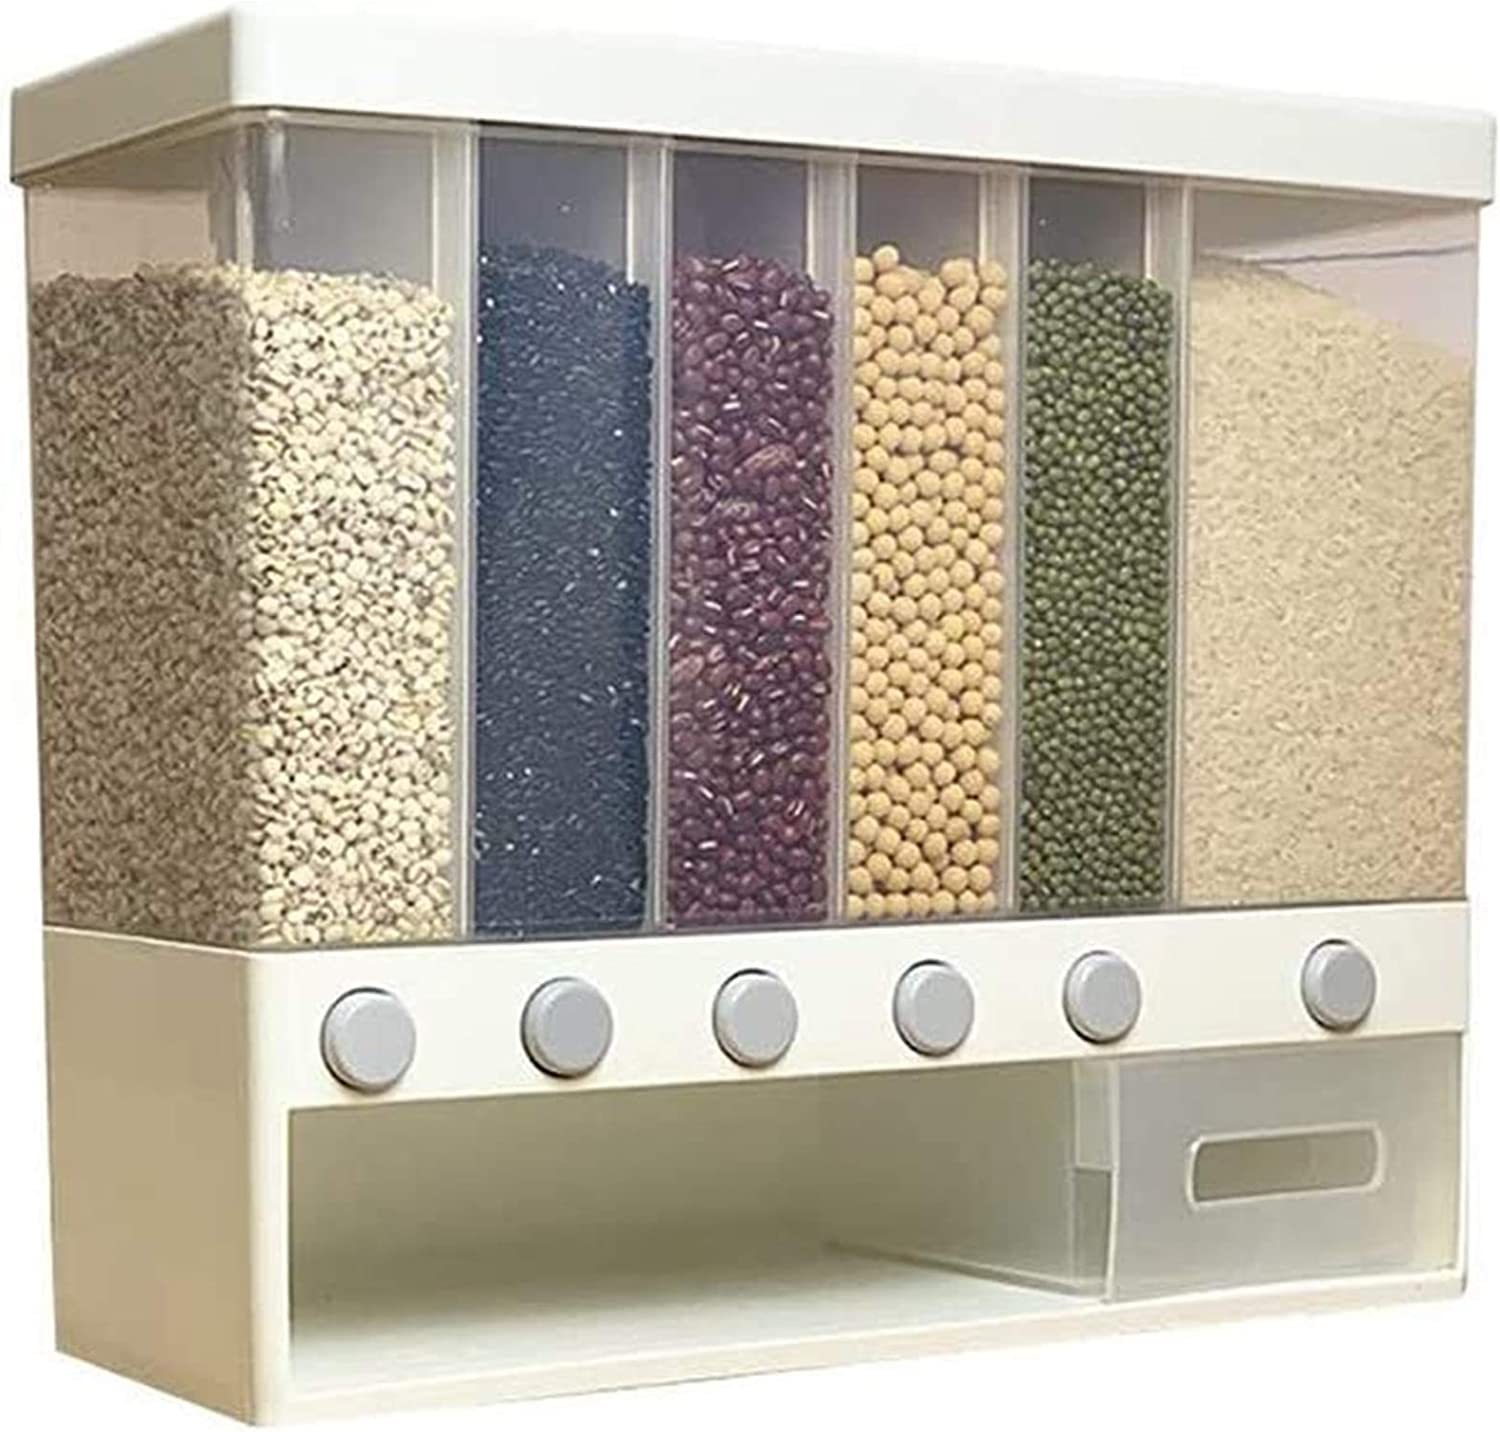 Grain container Rapid rise 10KG Wall SEAL limited product Mounted Rice Divided Dispen and Cereal